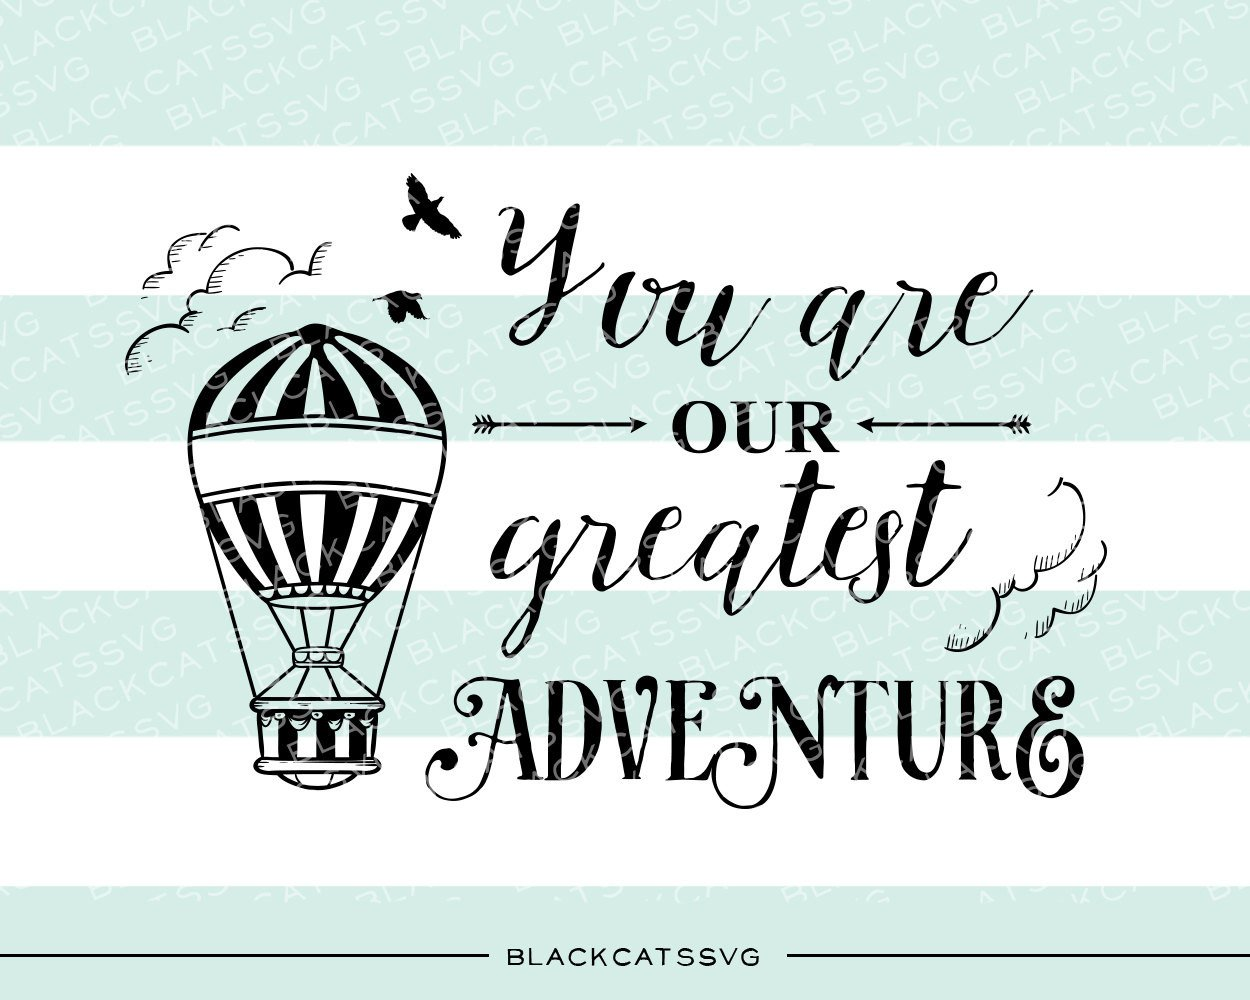 Adventure clipart sihlouette svg freeuse download You are our greatest adventure - SVG file Cutting File Clipart in Svg, Eps,  Dxf, Png for Cricut & Silhouette - svg svg freeuse download